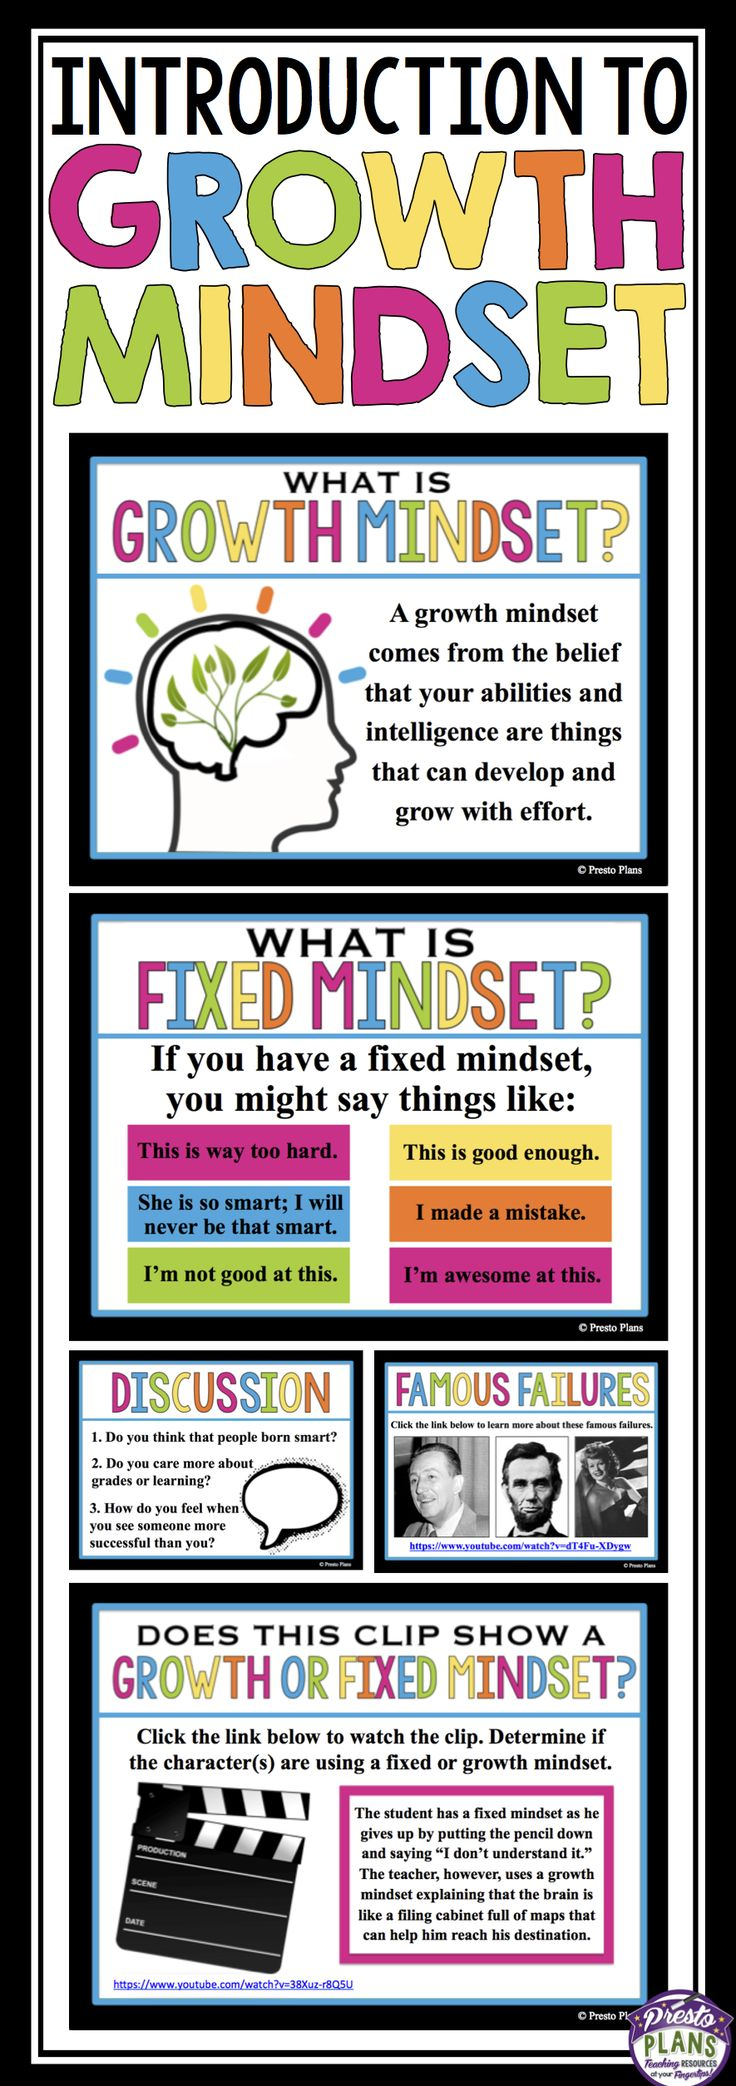 Introduce growth mindset to your students with this ready-to-use resource. After viewing this presentation, participating in the video activity prompts, and reading the handout, students will have a strong understanding of growth and fixed mindset!